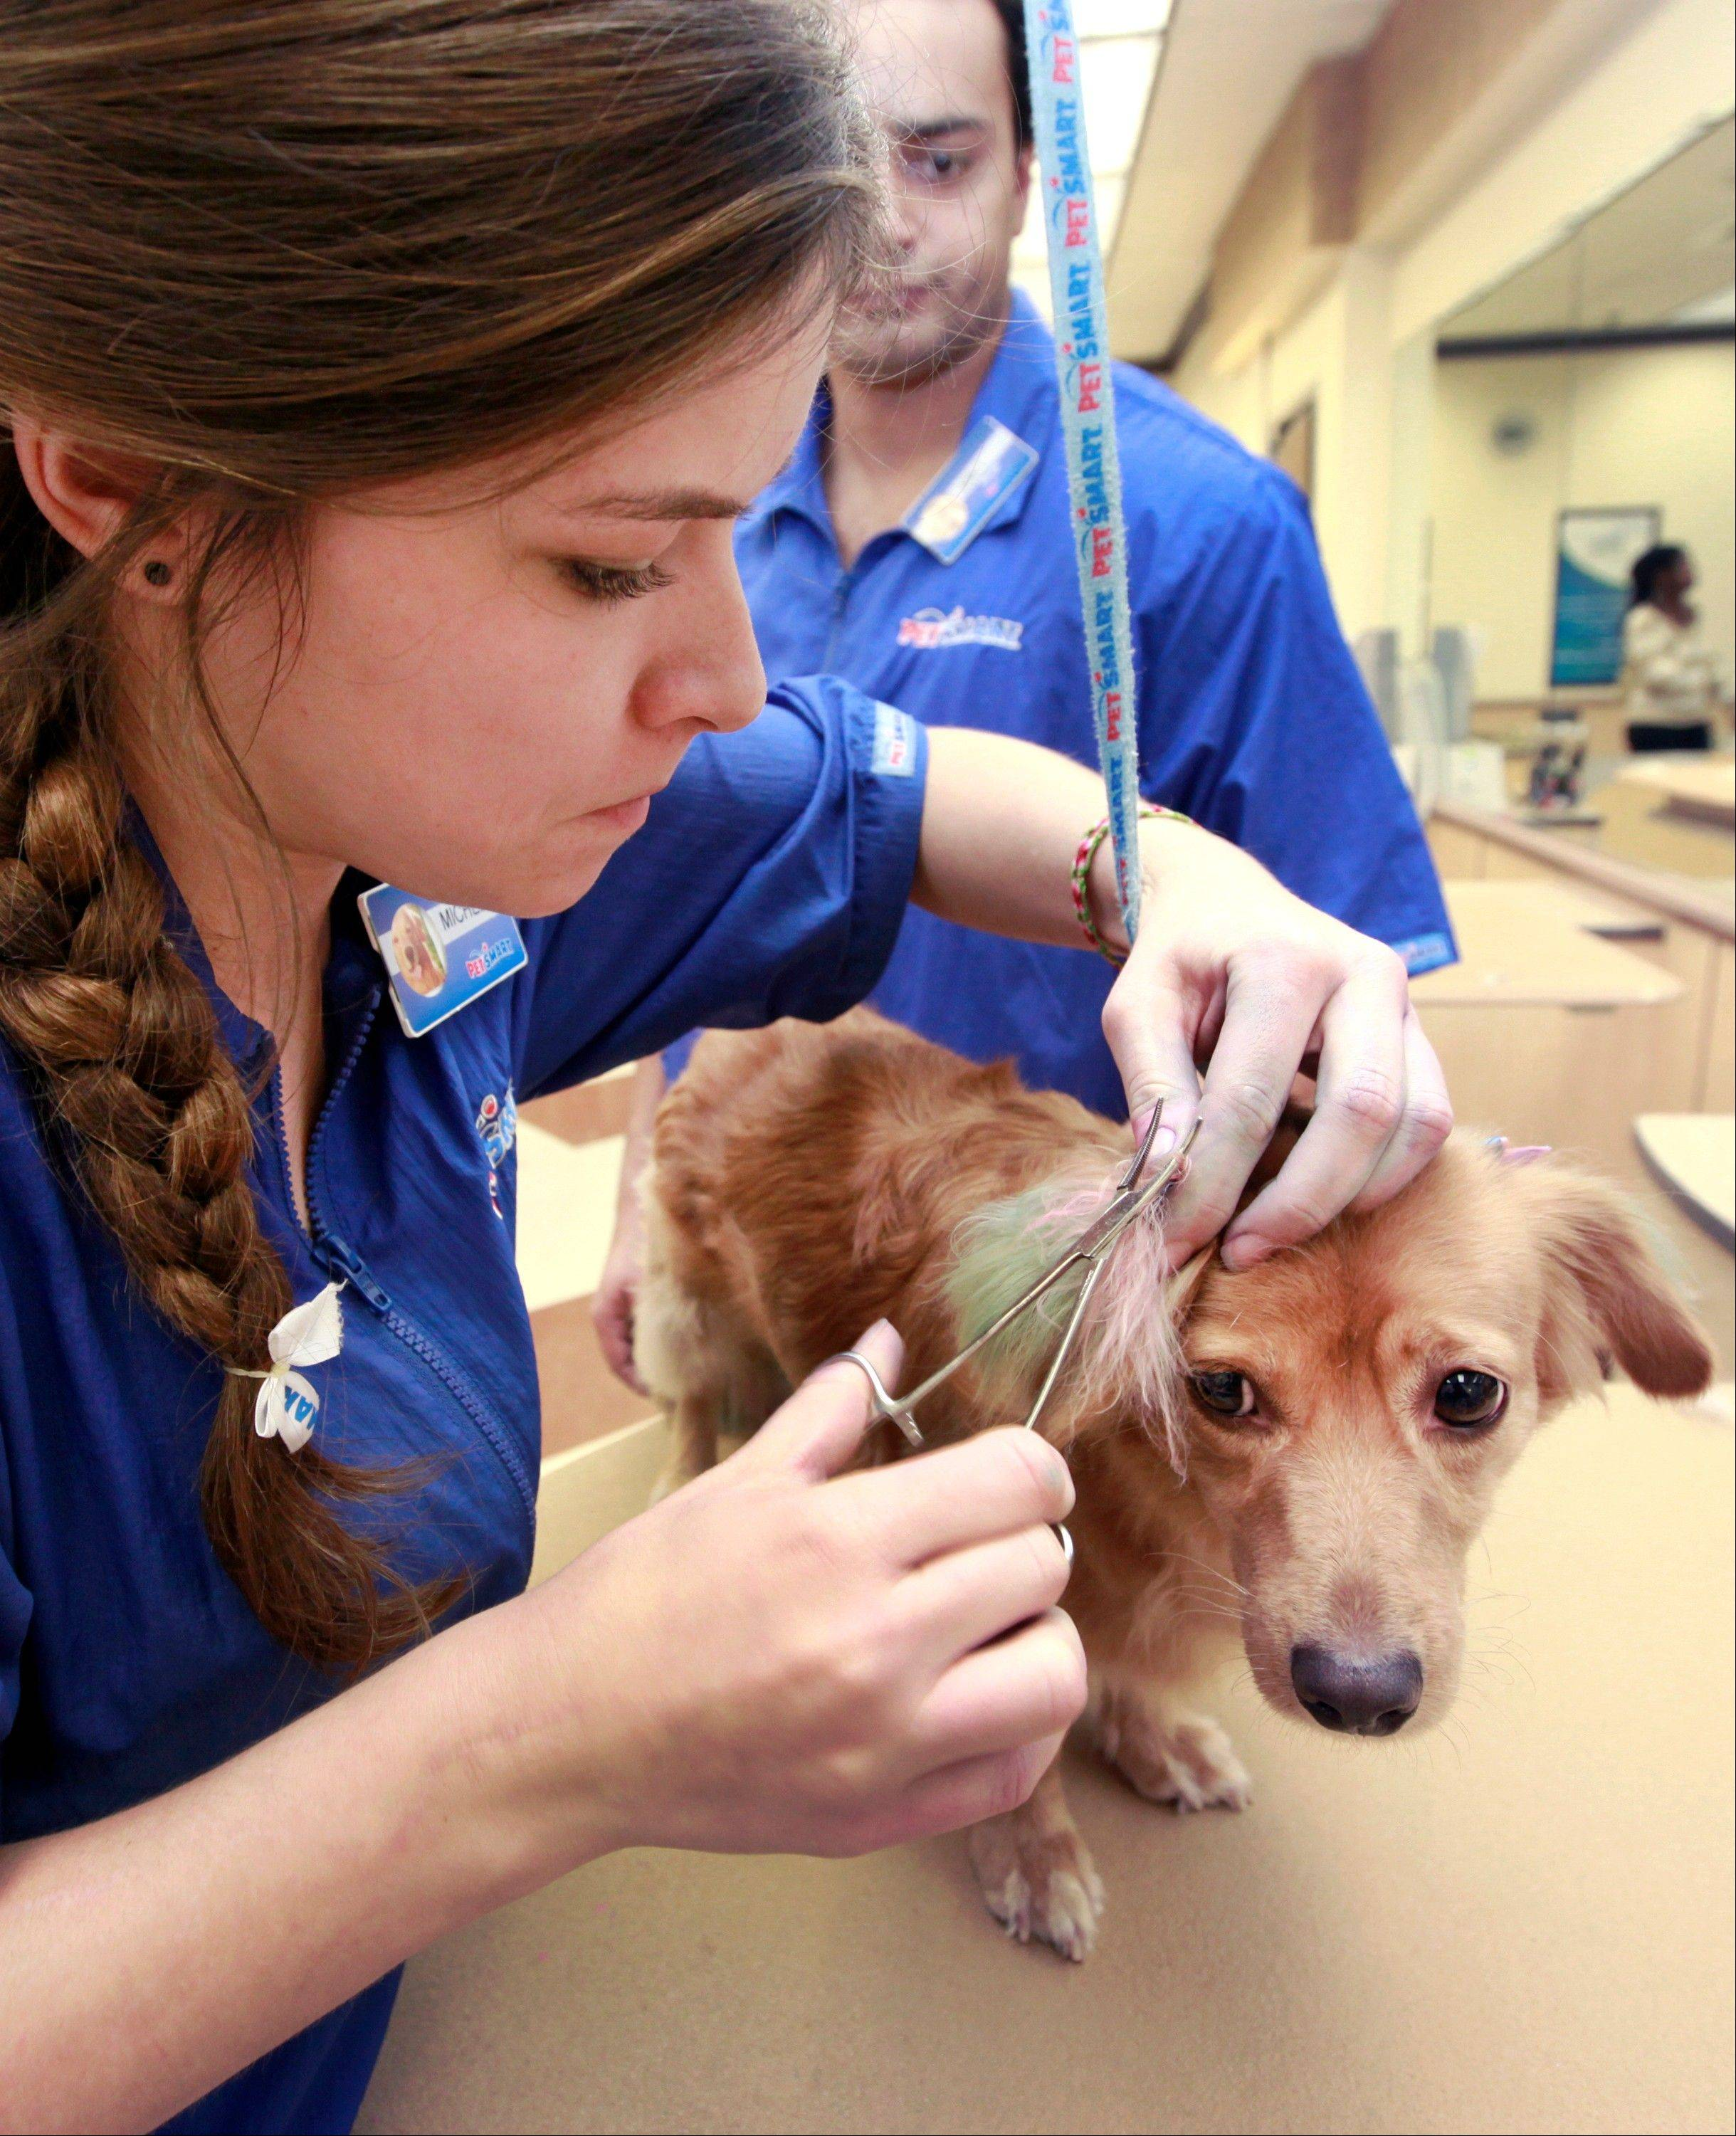 PetSmart groomer Michelle Boch, assisted by salon manager Joel Mitchell, adds color during a chalking treatment to Sugarplum at PetSmart in Culver City, Calif. For some dog owners, grooming is not enough, so with chalk and paint they're adding color and transforming their pooches into fantasy fur balls that draw compliments and strange looks.